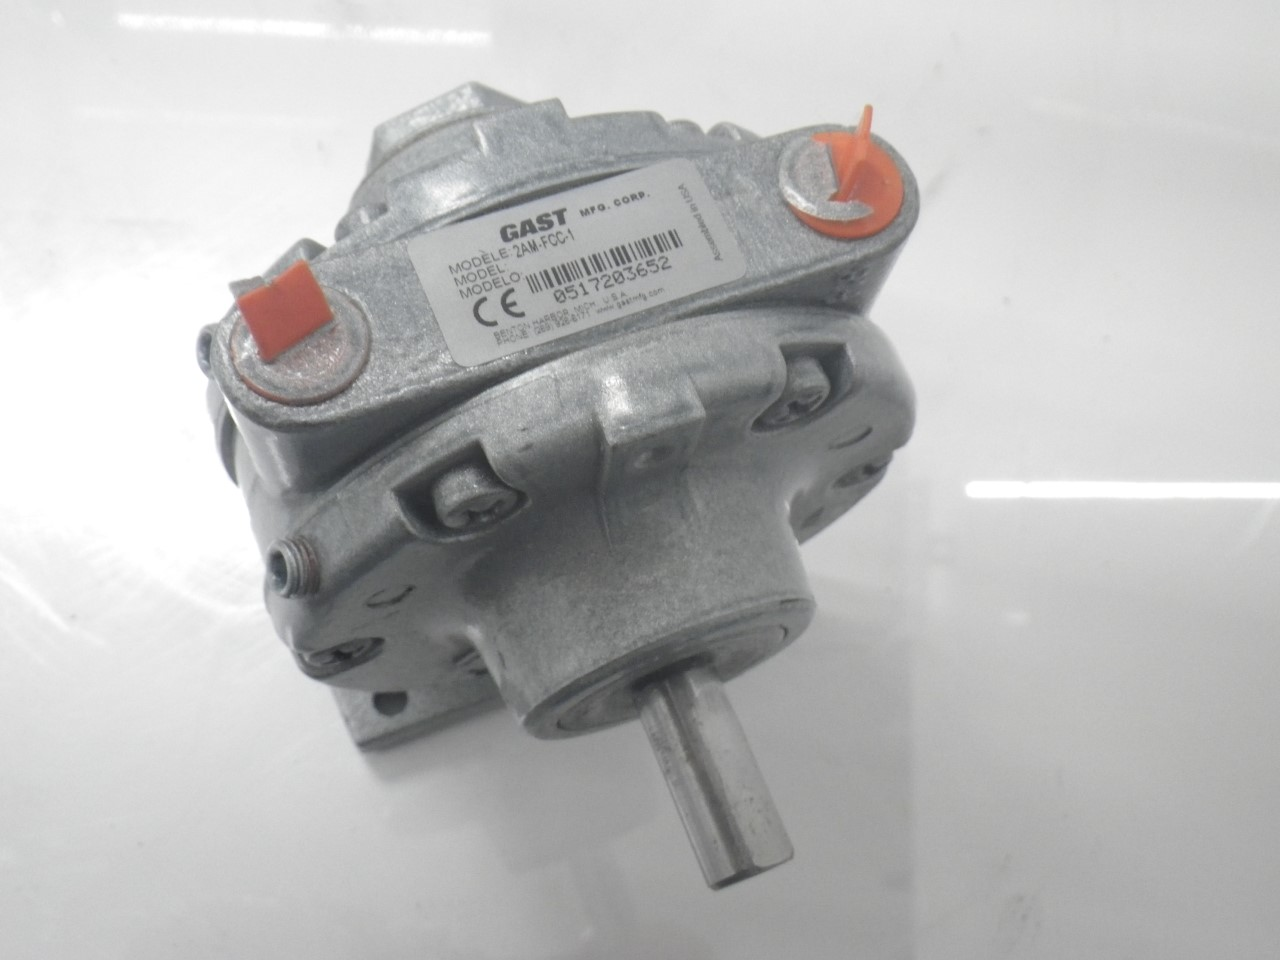 IMGP11832AM-FCC-1 Gast Air Motor (Used Tested) (Very Good Condition) (15)